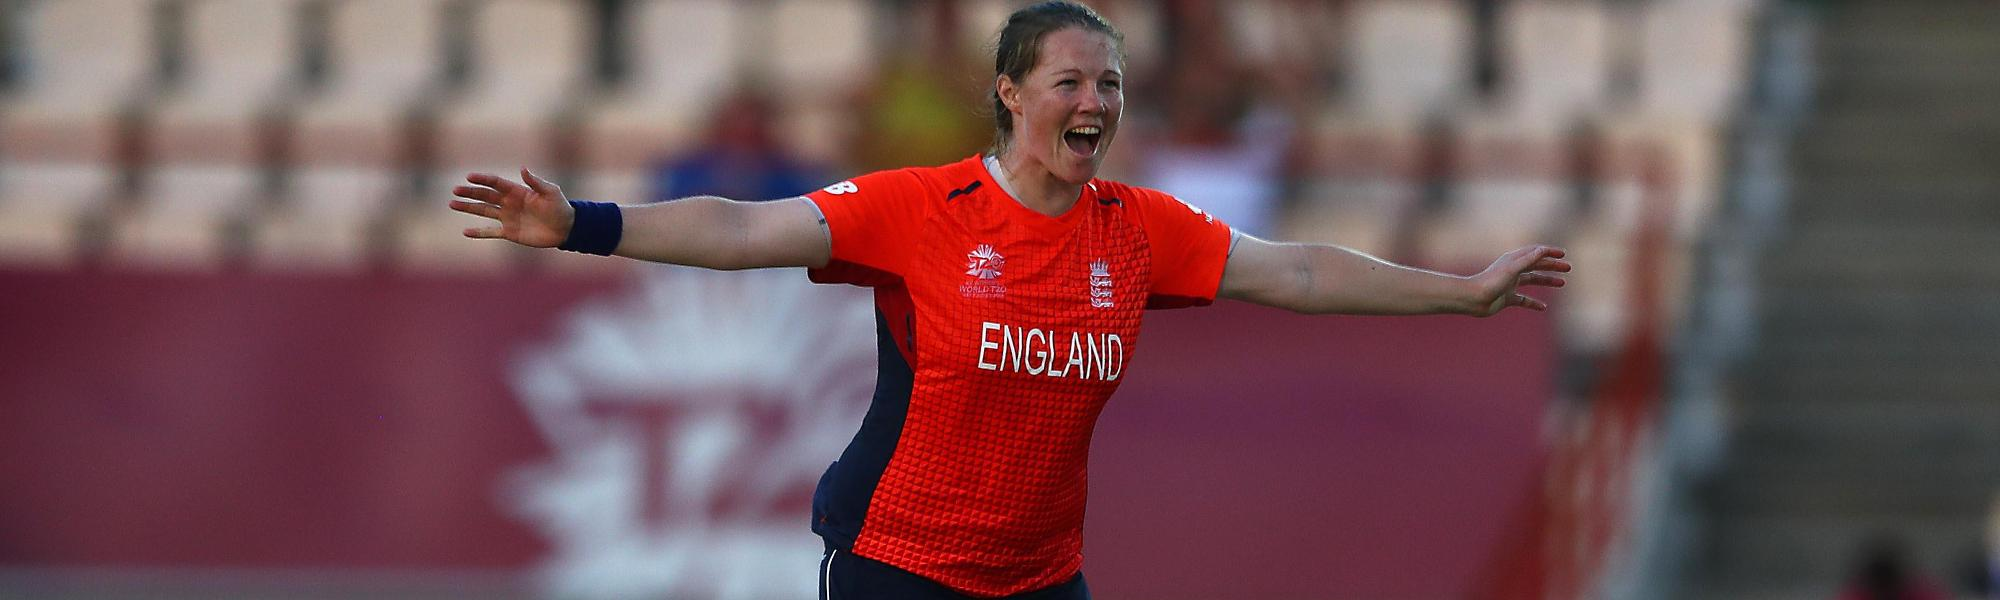 Anya Shrubsole of England celebrates bowling Yolani Fourie of South Africa during the ICC Women's World T20 2018 match between England and South Africa at Darren Sammy Cricket Ground on November 16, 2018 in Gros Islet, Saint Lucia.